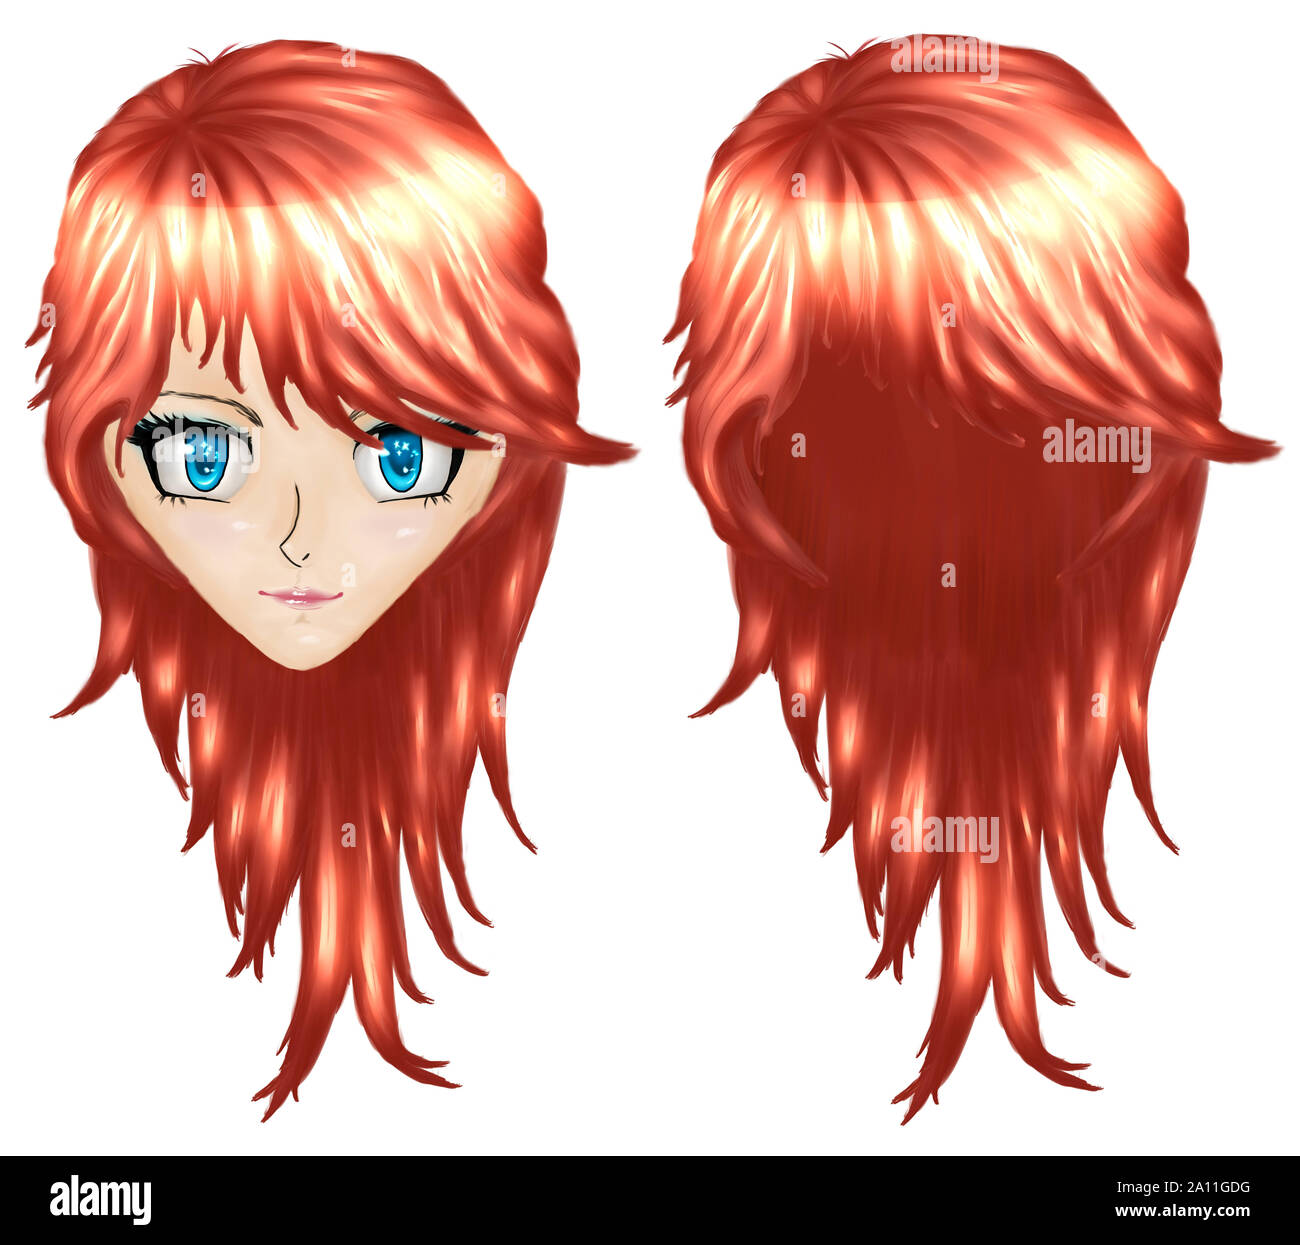 26+ Anime Red Haired Girl  Wallpapers